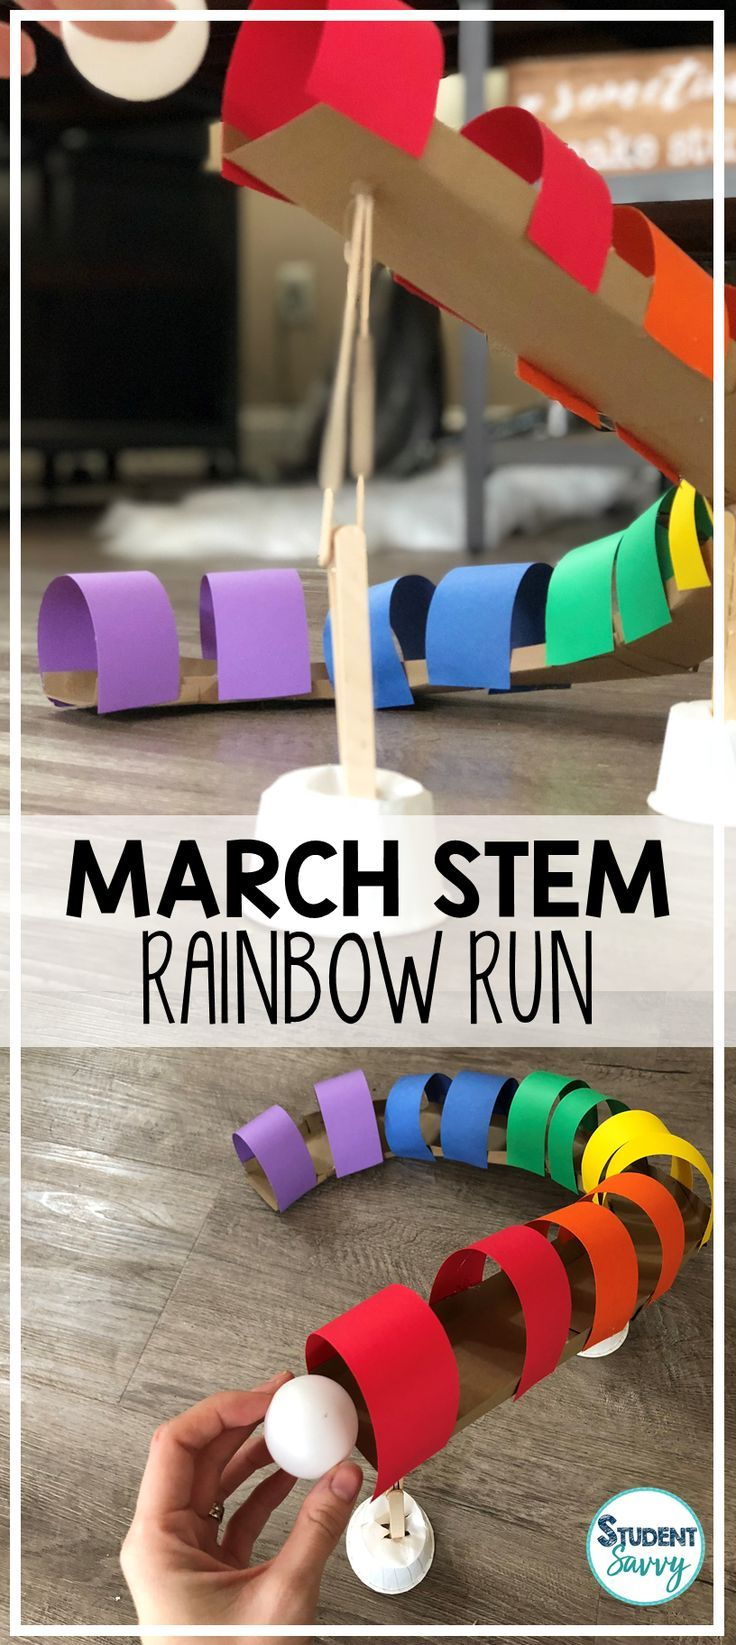 St. Patrick's Day STEM Challenges March for Simple Machines | Stem students, Stem challenges #stemactivitieselementary